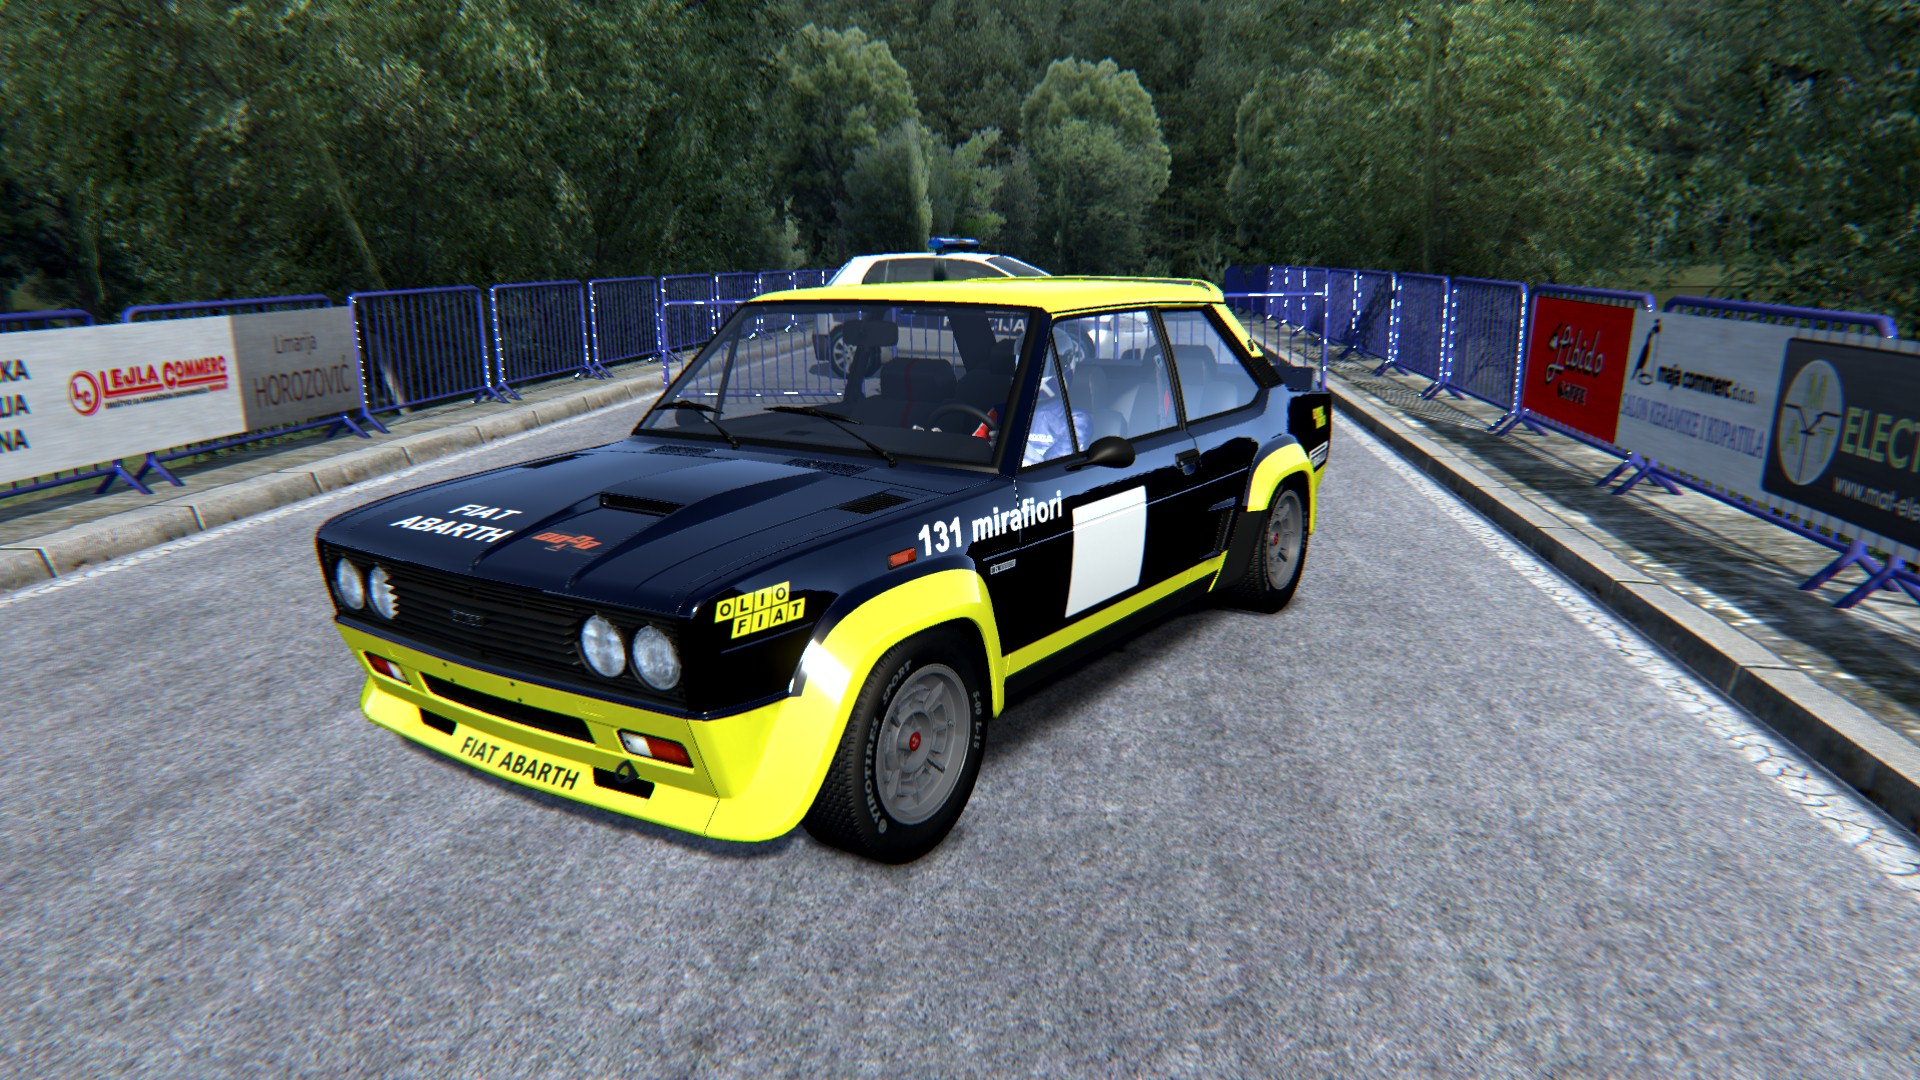 Screenshot_fiat_131_abarth_krajiskazmija_26-6-115-17-0-48.jpg